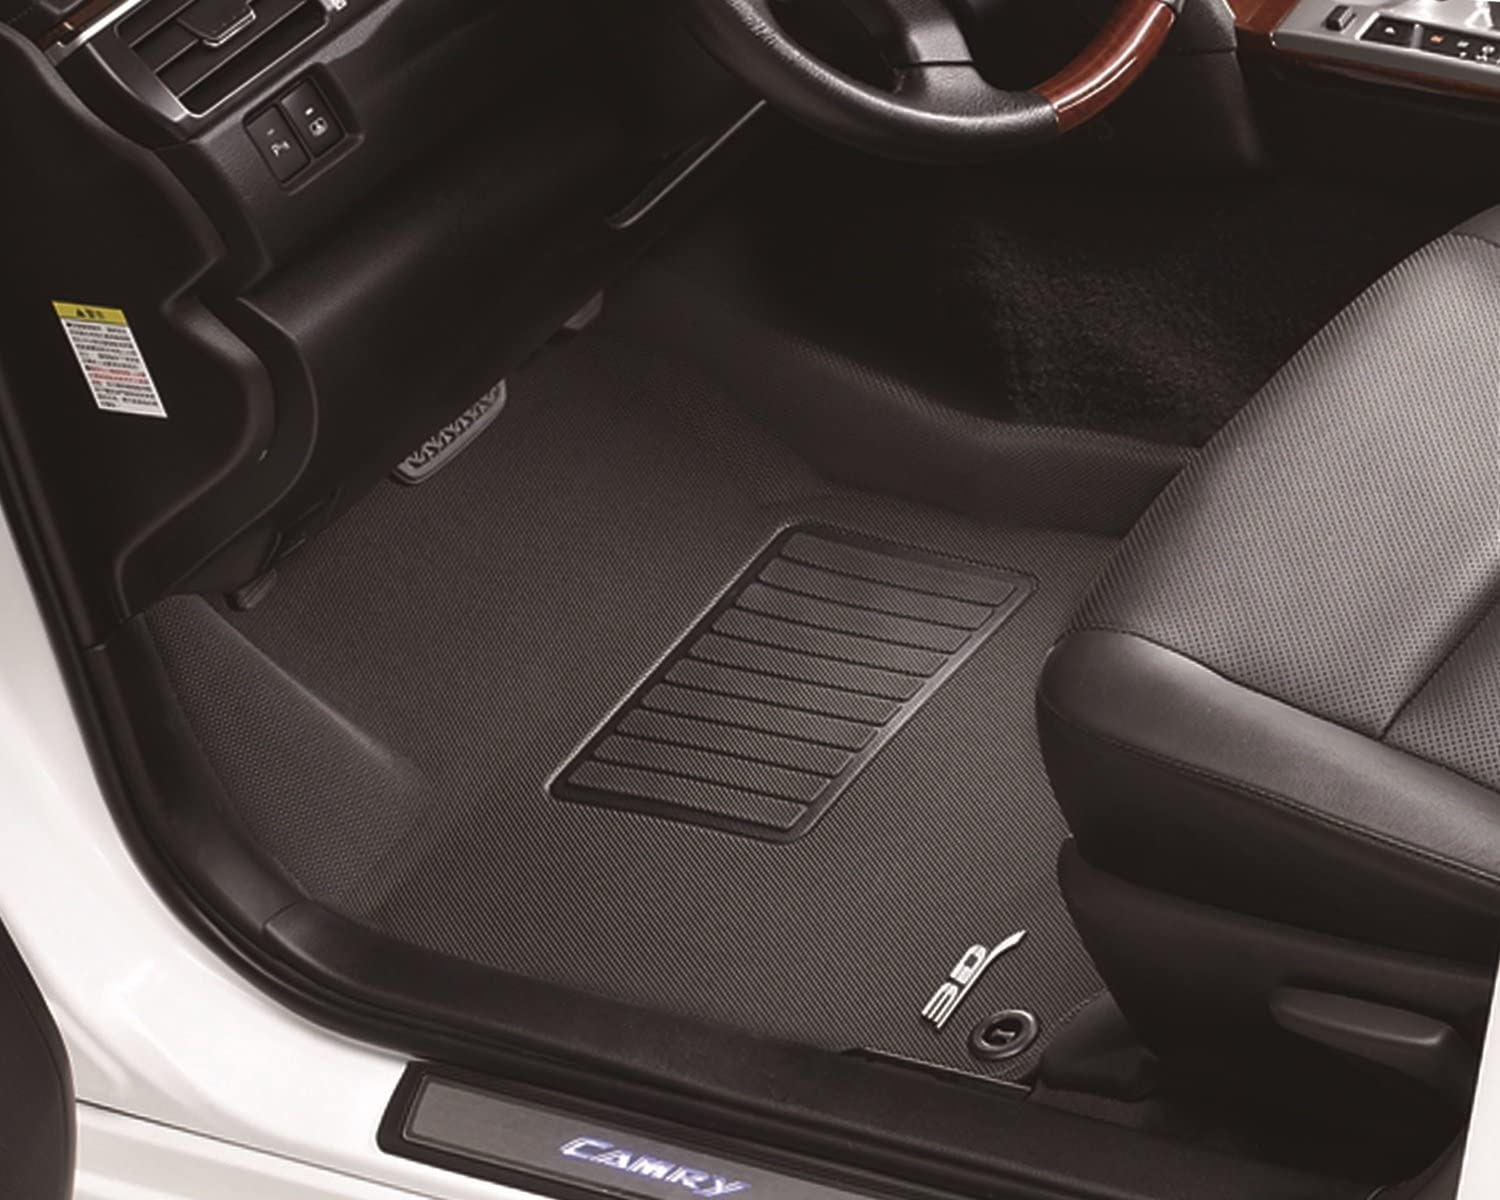 Kagu Rubber Black 3D MAXpider Complete Set Custom Fit All-Weather Floor Mat for Select Ford Fusion Models